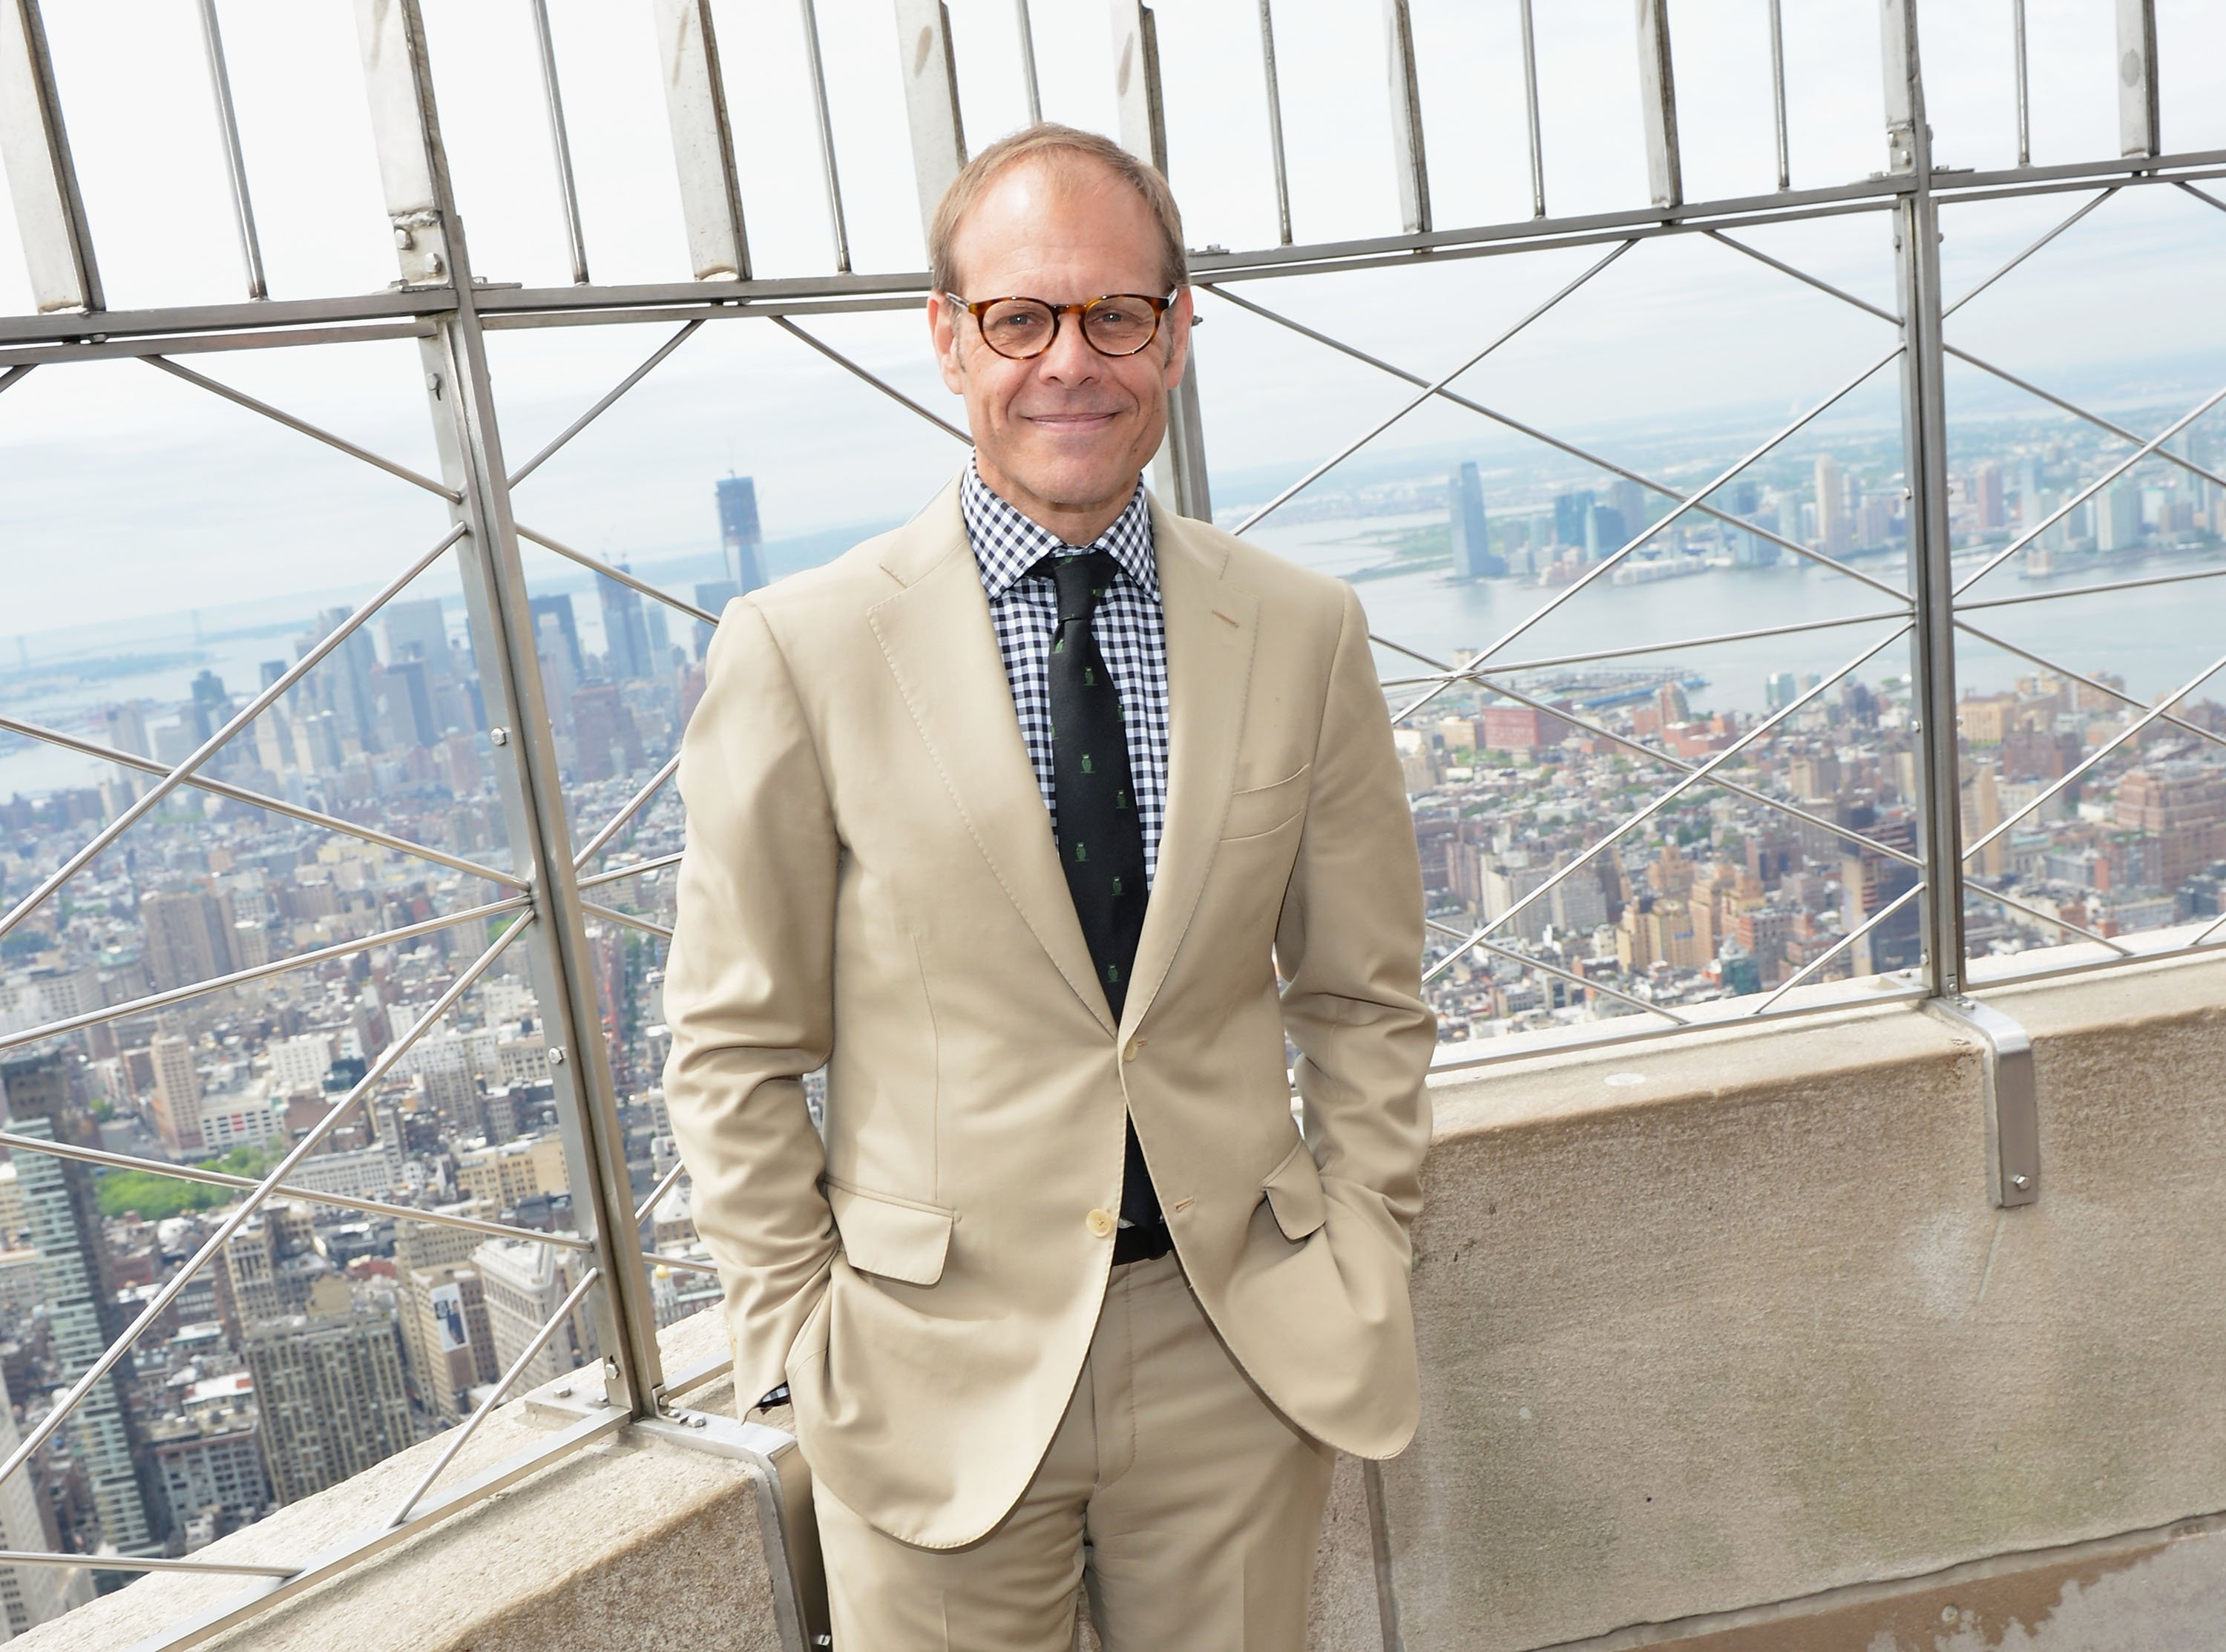 Alton Brown on a high-rise building | Photo: Getty Images